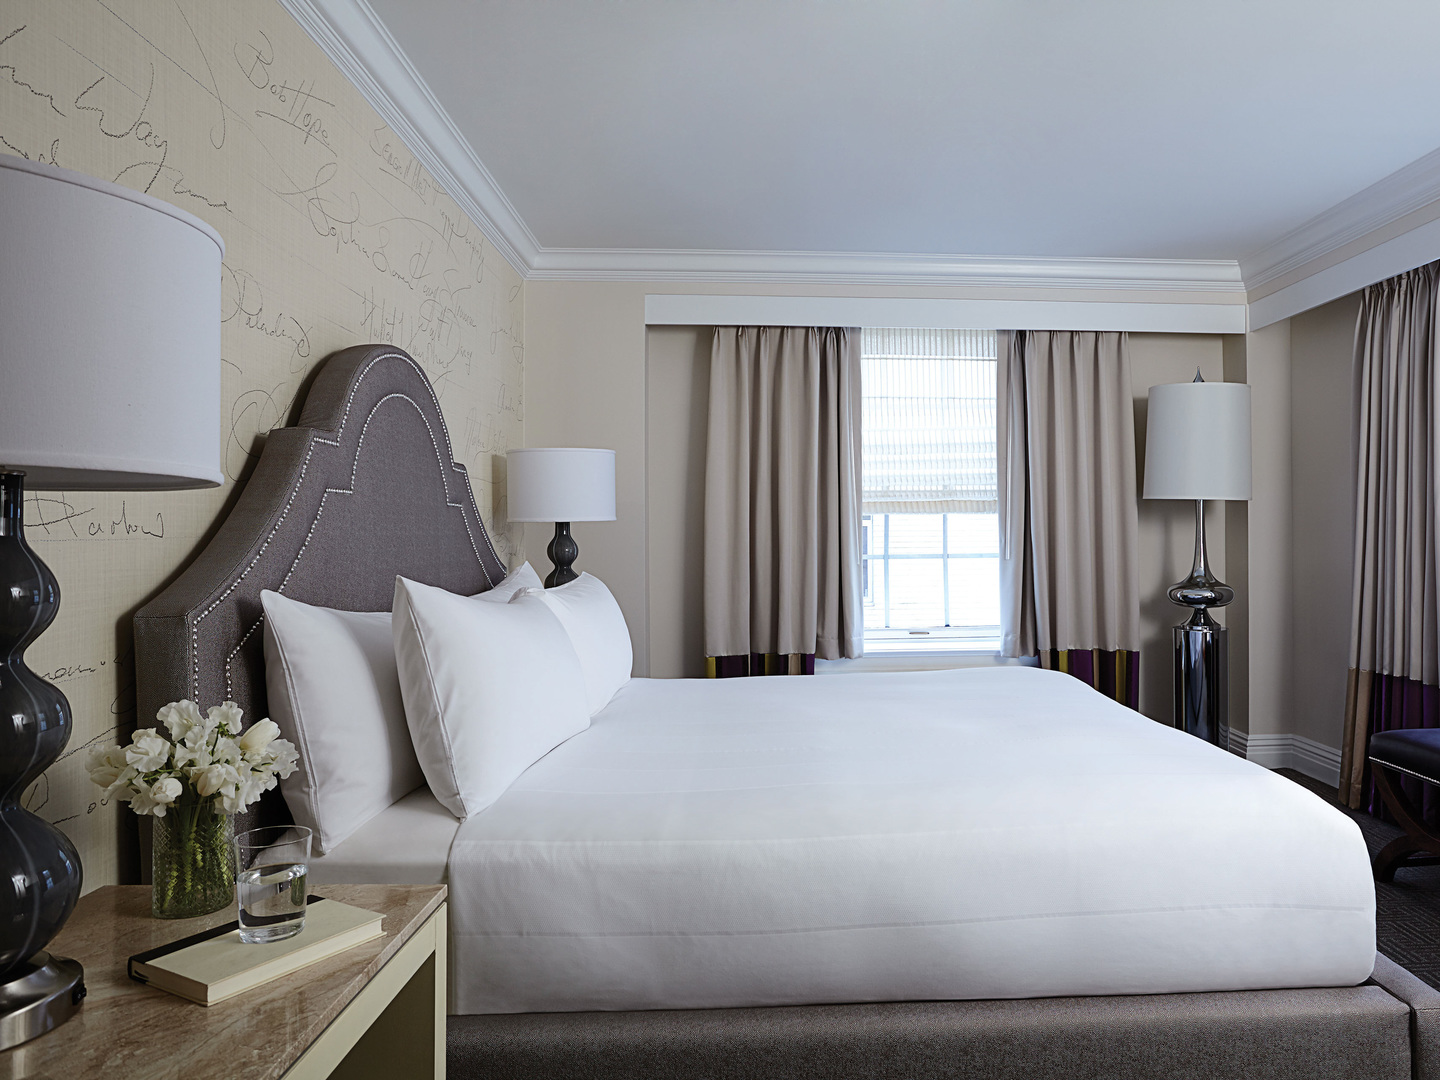 Marriott Vacation Club Pulse<span class='trademark'>®</span> at The Mayflower, Washington, D.C. Executive King Suite. Marriott Vacation Club Pulse<span class='trademark'>®</span> at The Mayflower, Washington, D.C. is located in Washington, D.C. United States.